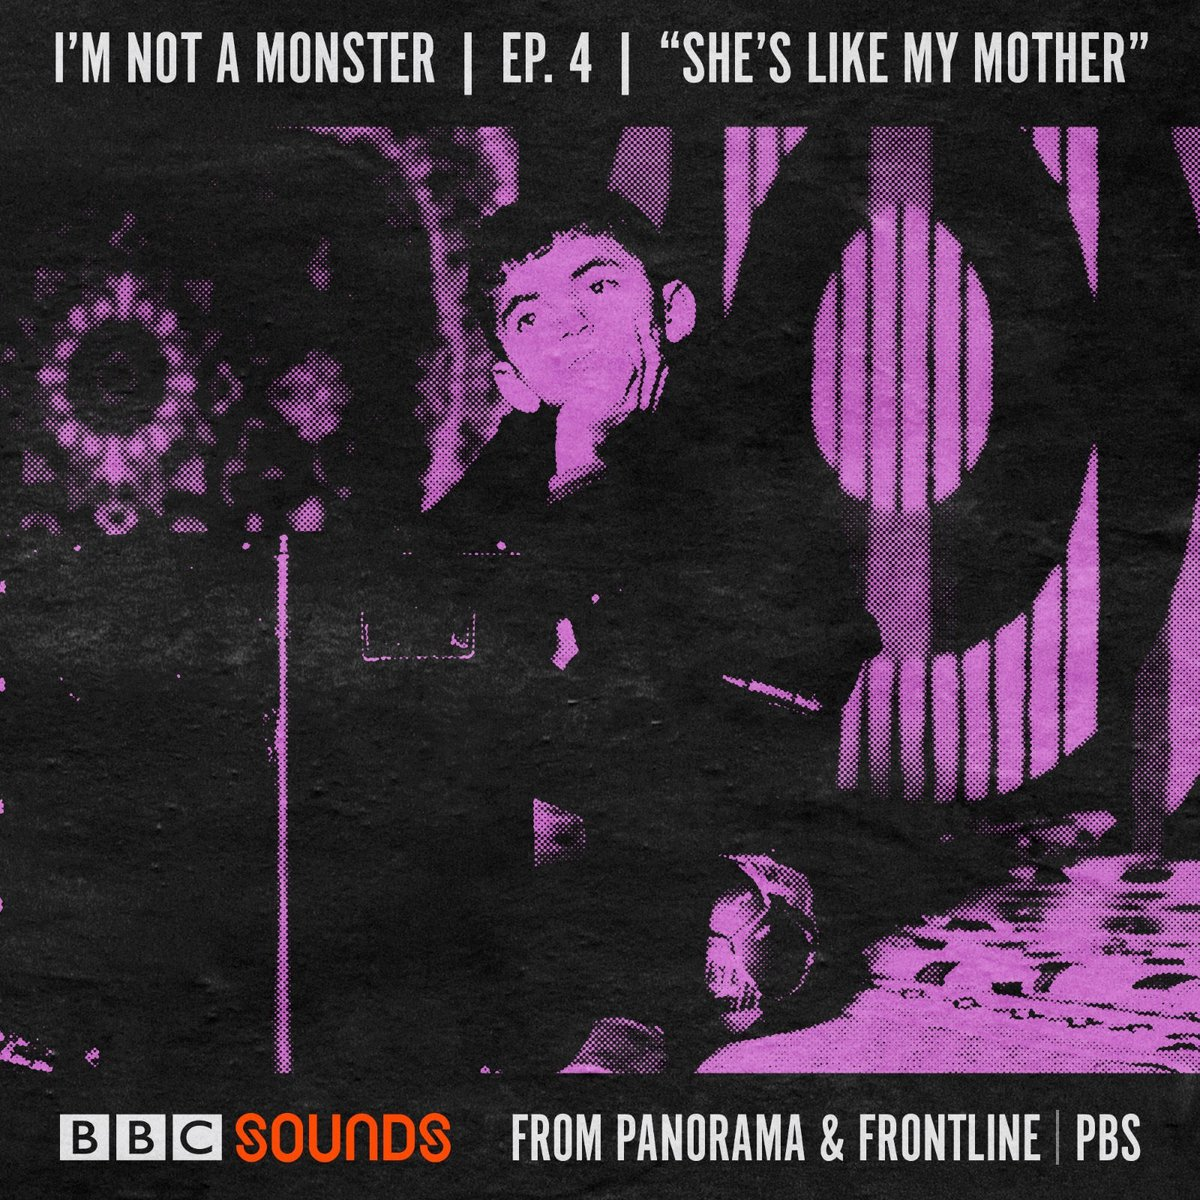 OUT NOW: Episode 4, Im Not A Monster podcast: Shes Like My Mother. A young boy in the mountains of Northern Iraq makes Josh question what he knows about Sam. Then ten days searching war-torn Syria lead to an offer of help, but can it be trusted? bbc.co.uk/programmes/p08…